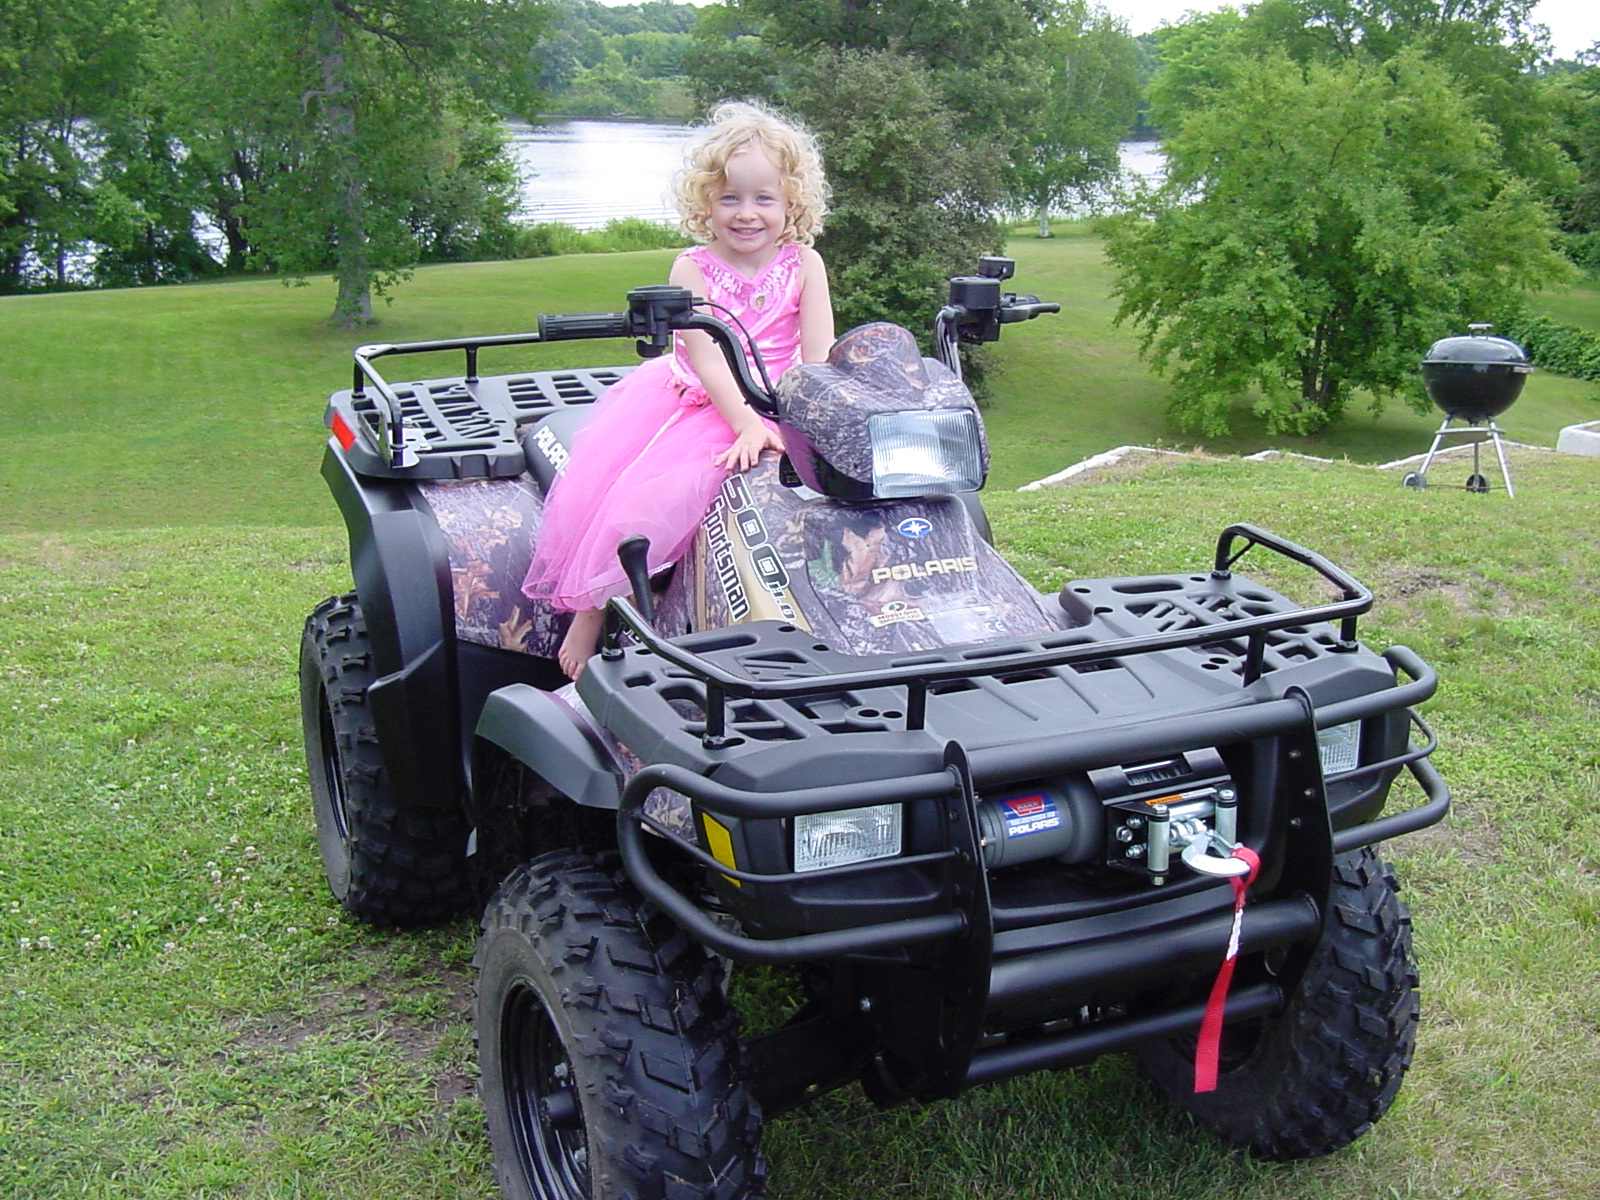 Four-wheeling dress